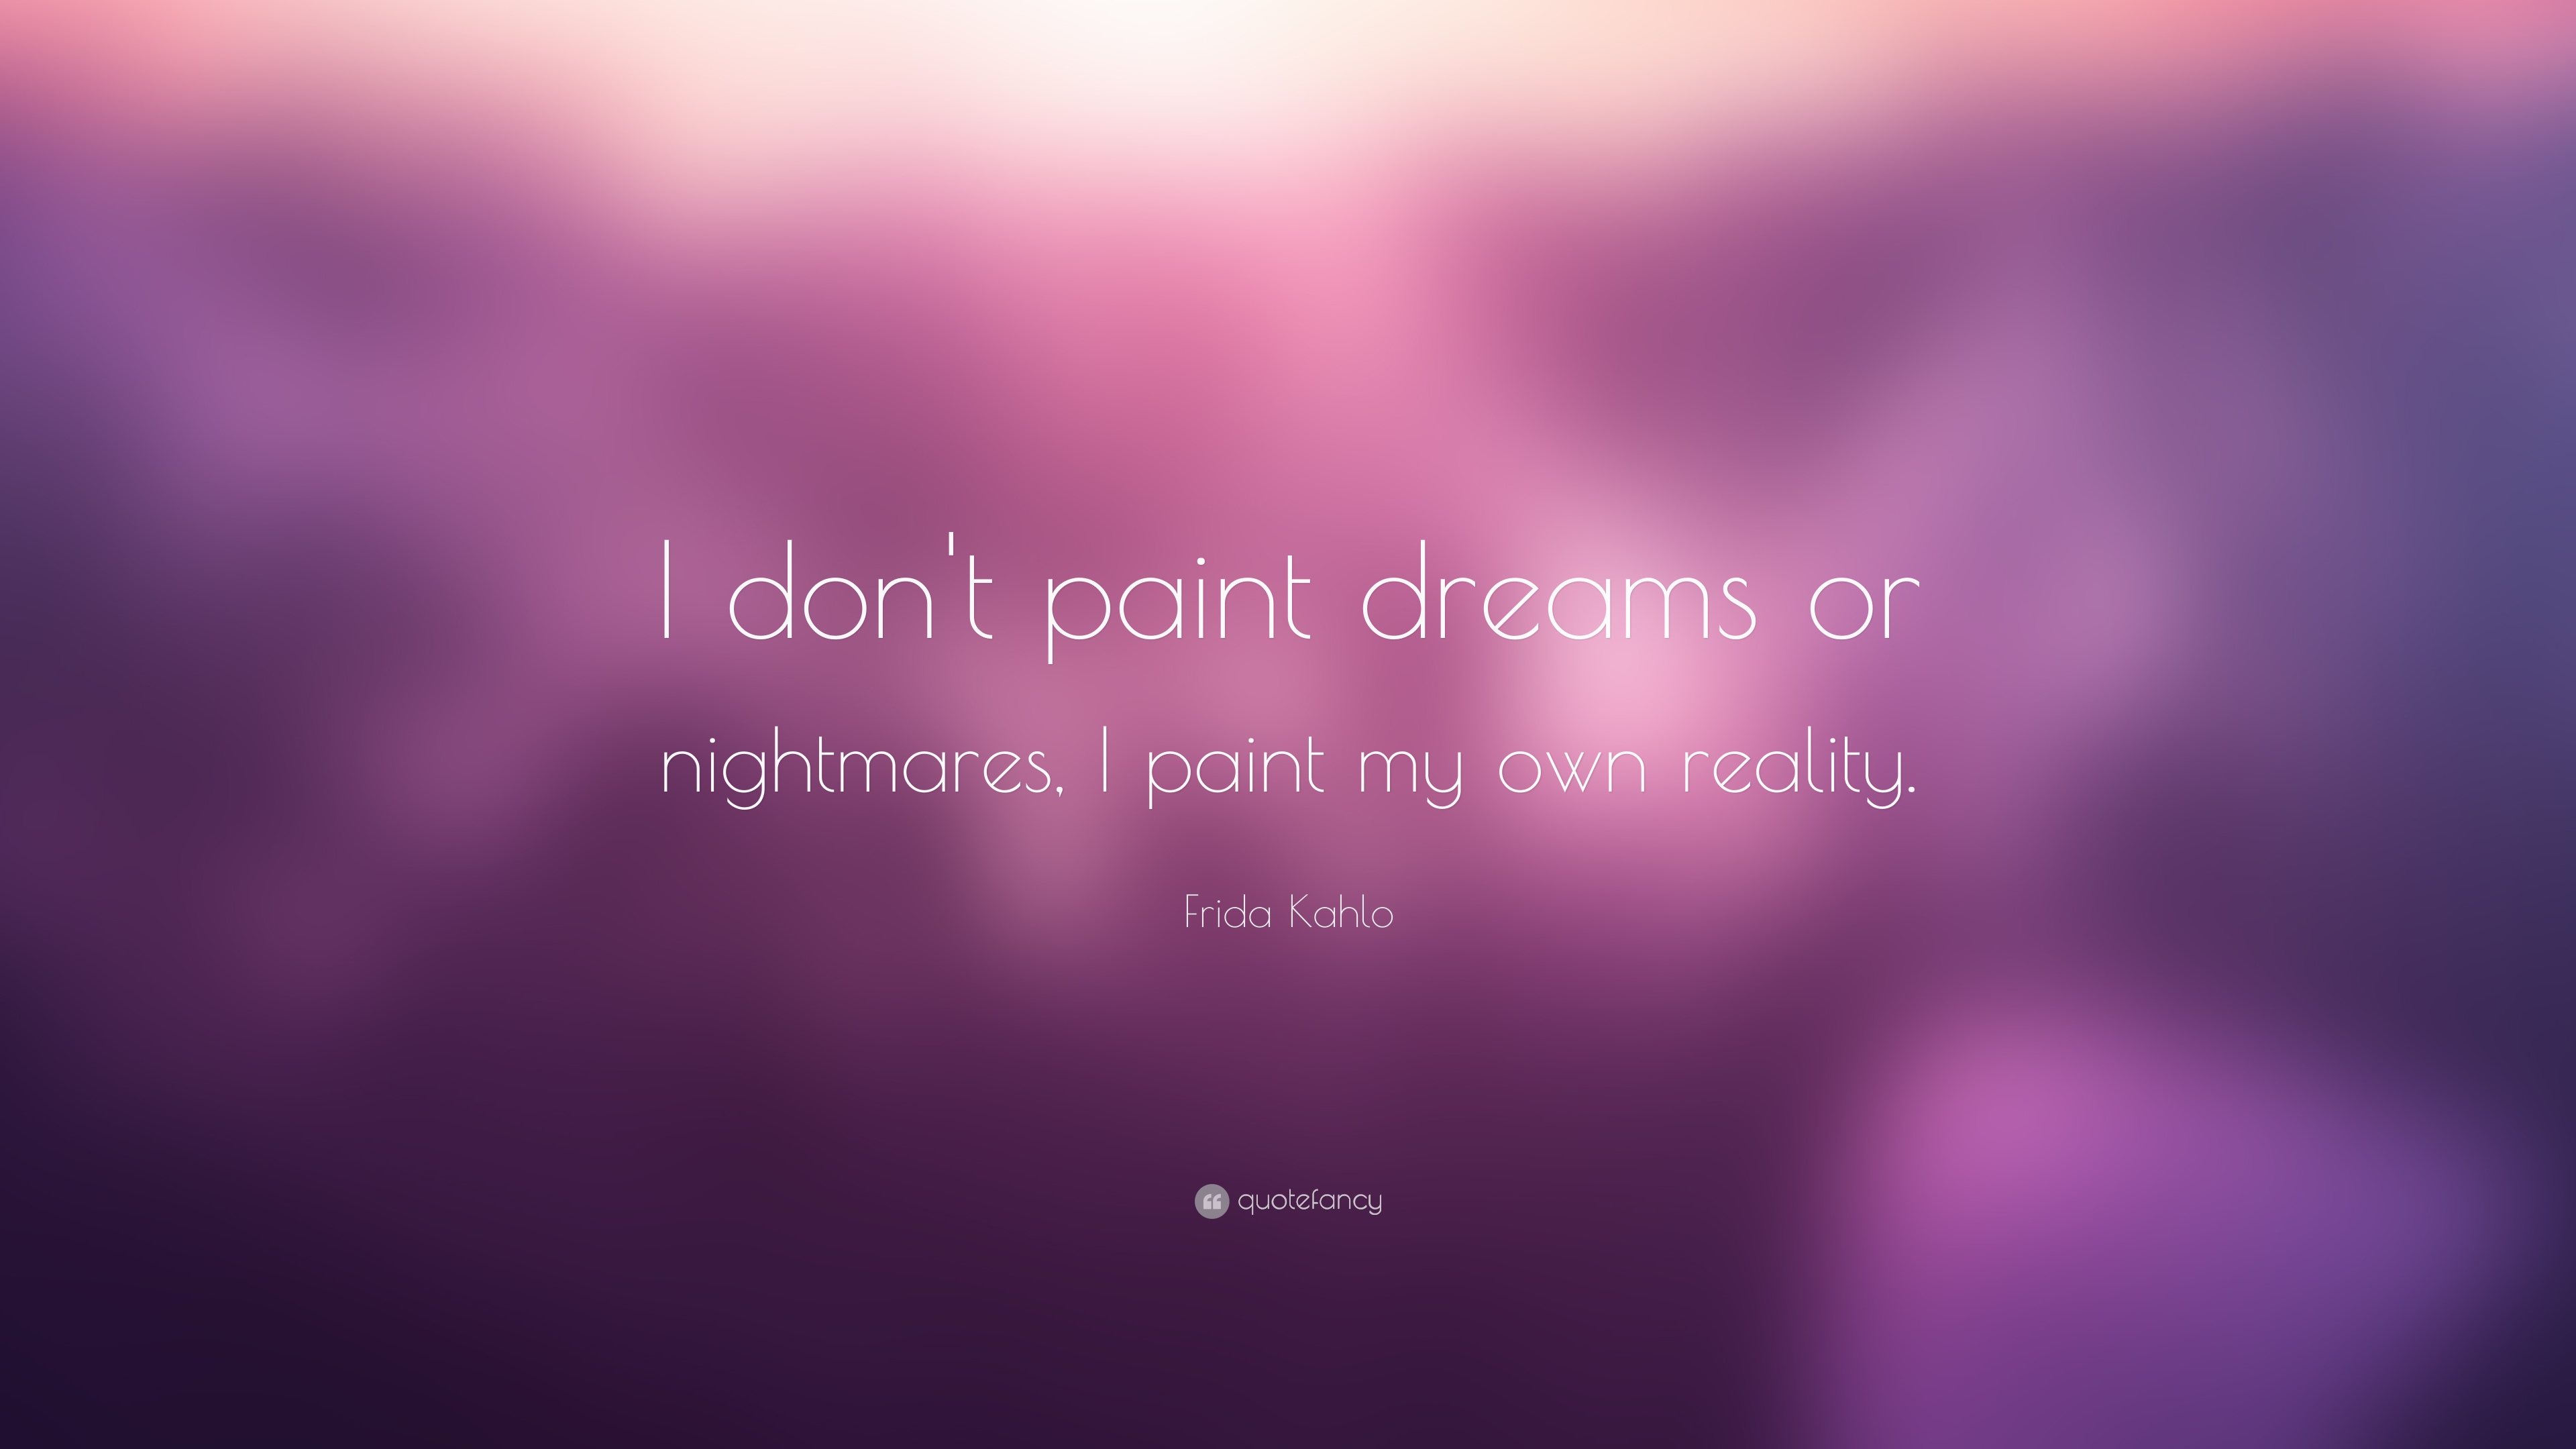 Quotes About Dreams I Dont Paint Or Nightmares